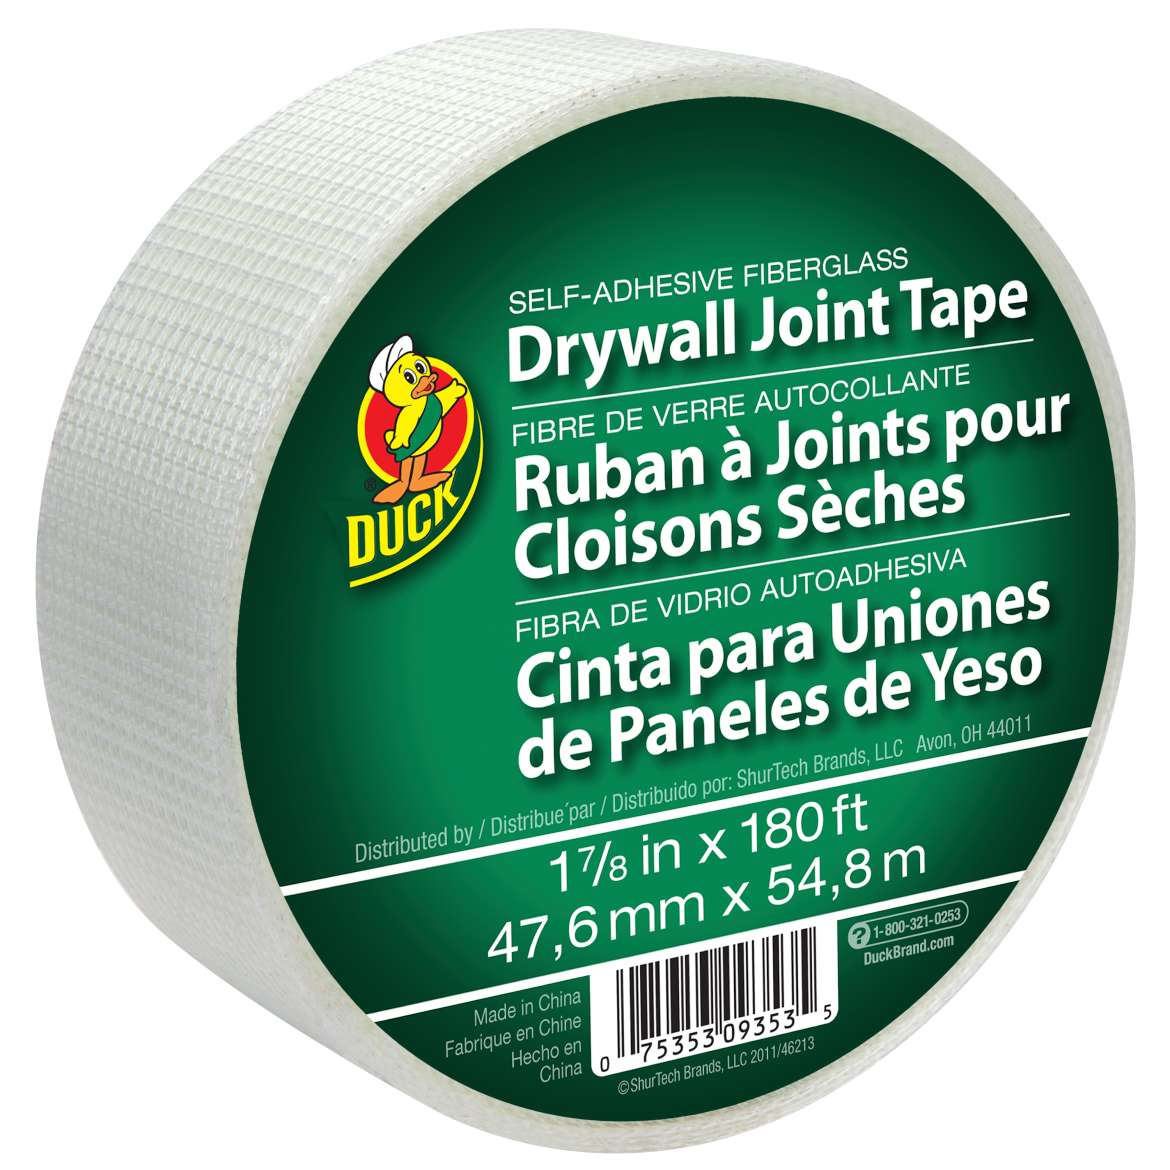 Drywall Joint Tape Image